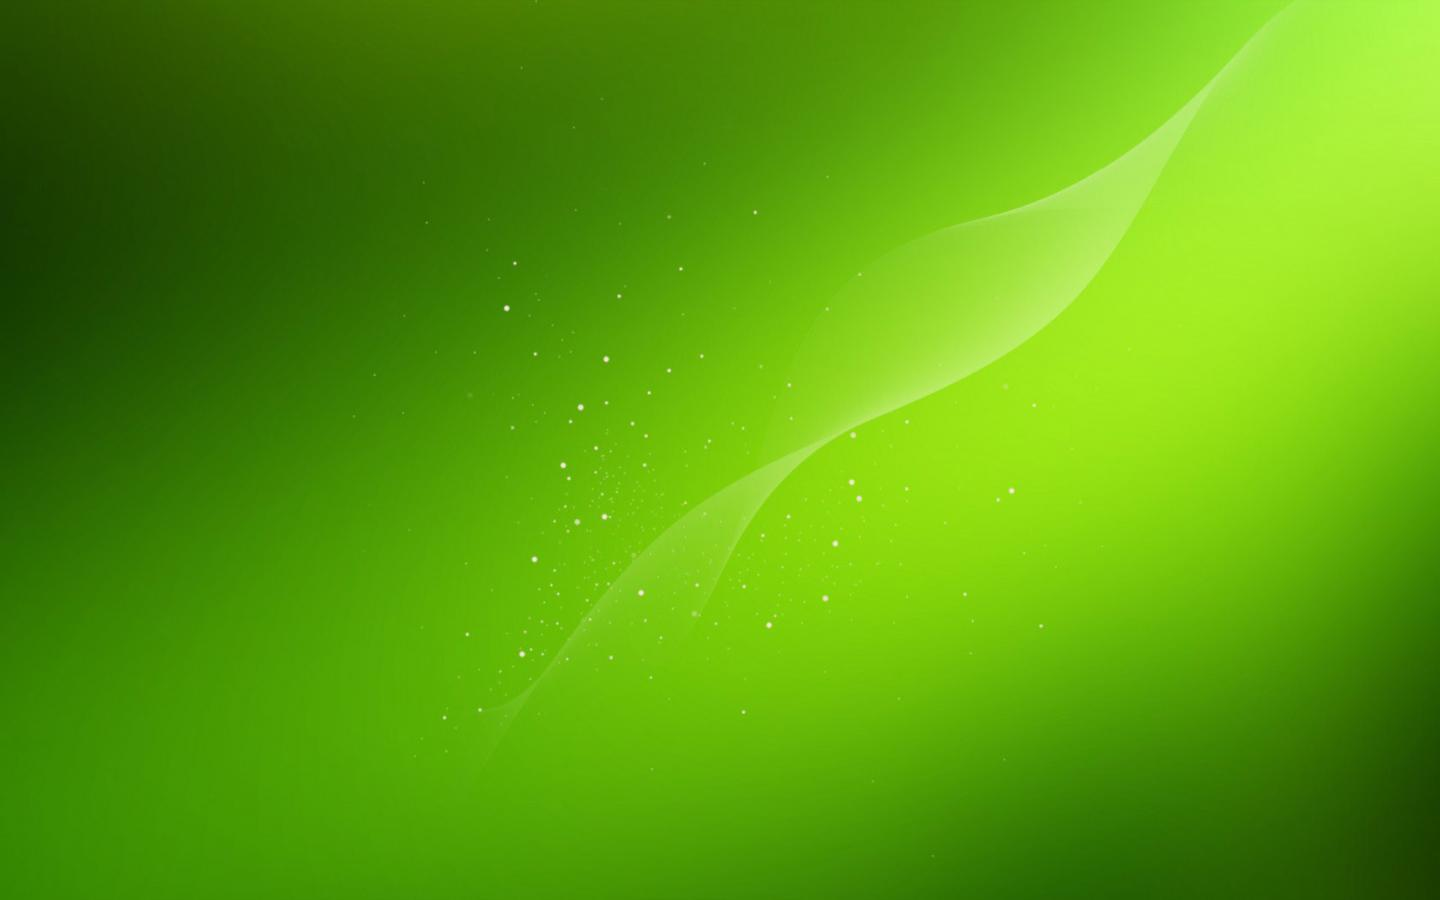 green desktop wallpapers wallpaper cave